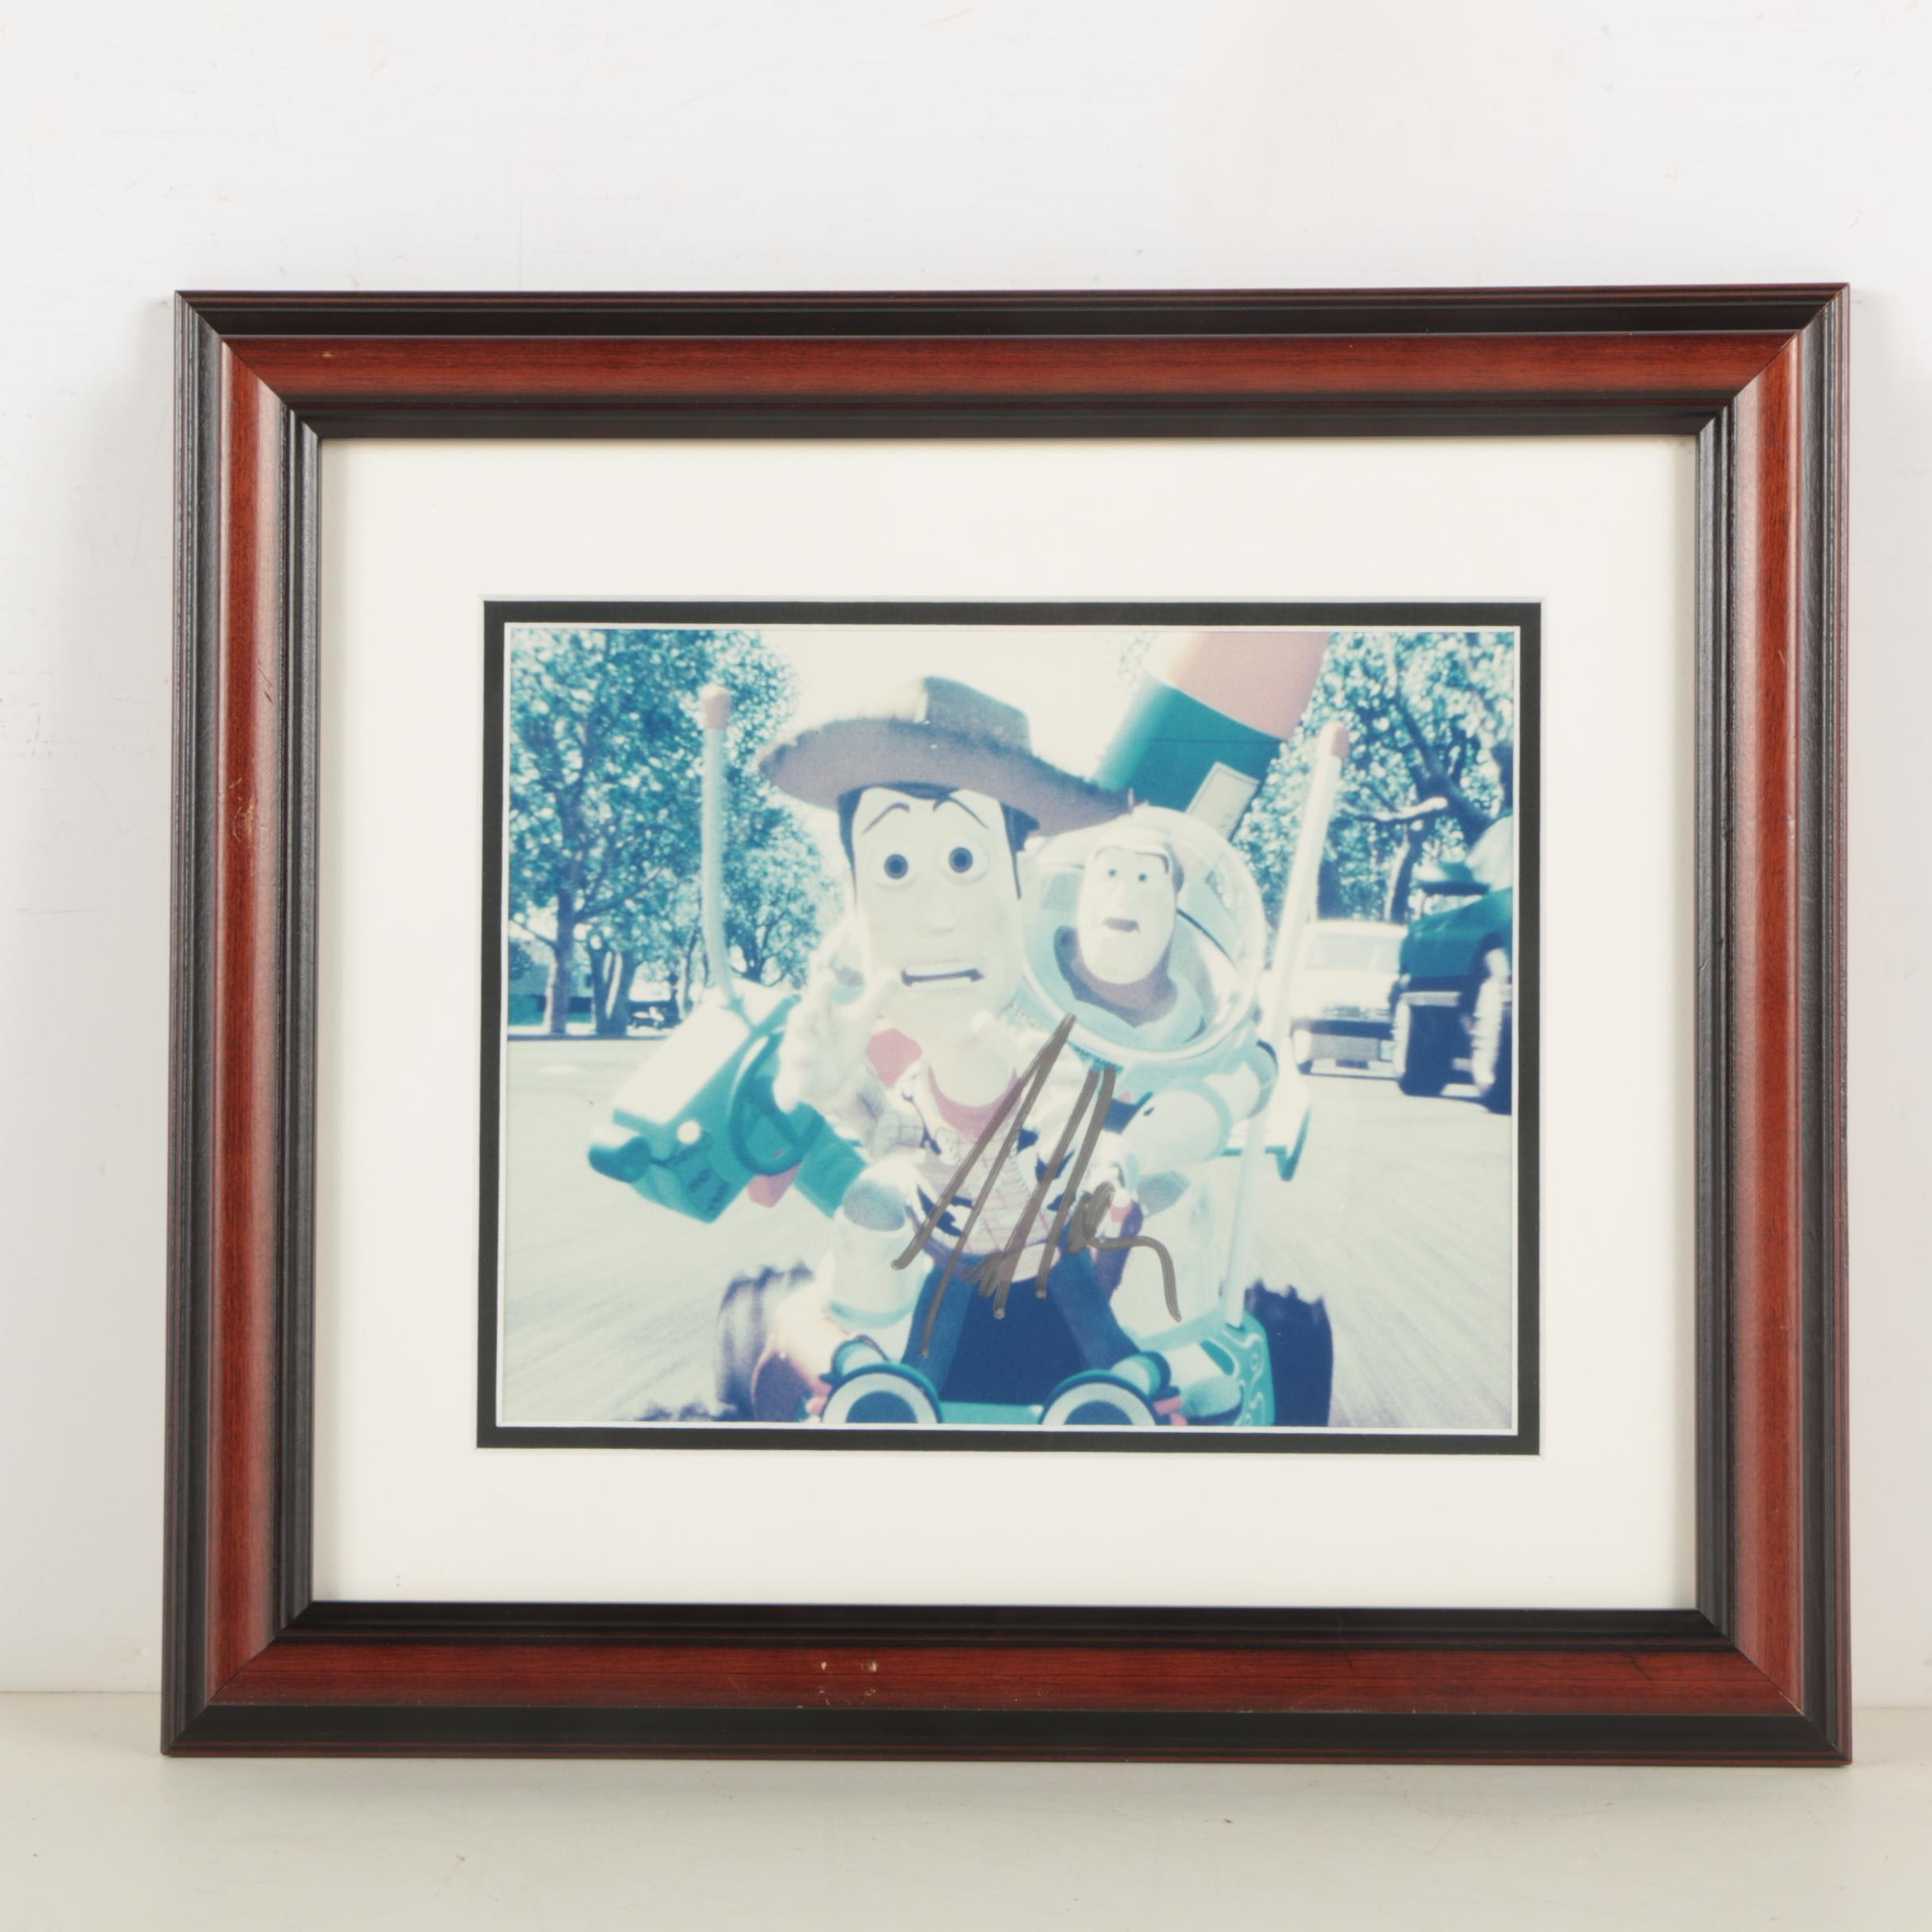 """Tim Allen Autographed Digital Print of Buzz Lightyear and Woody from """"Toy Story"""""""